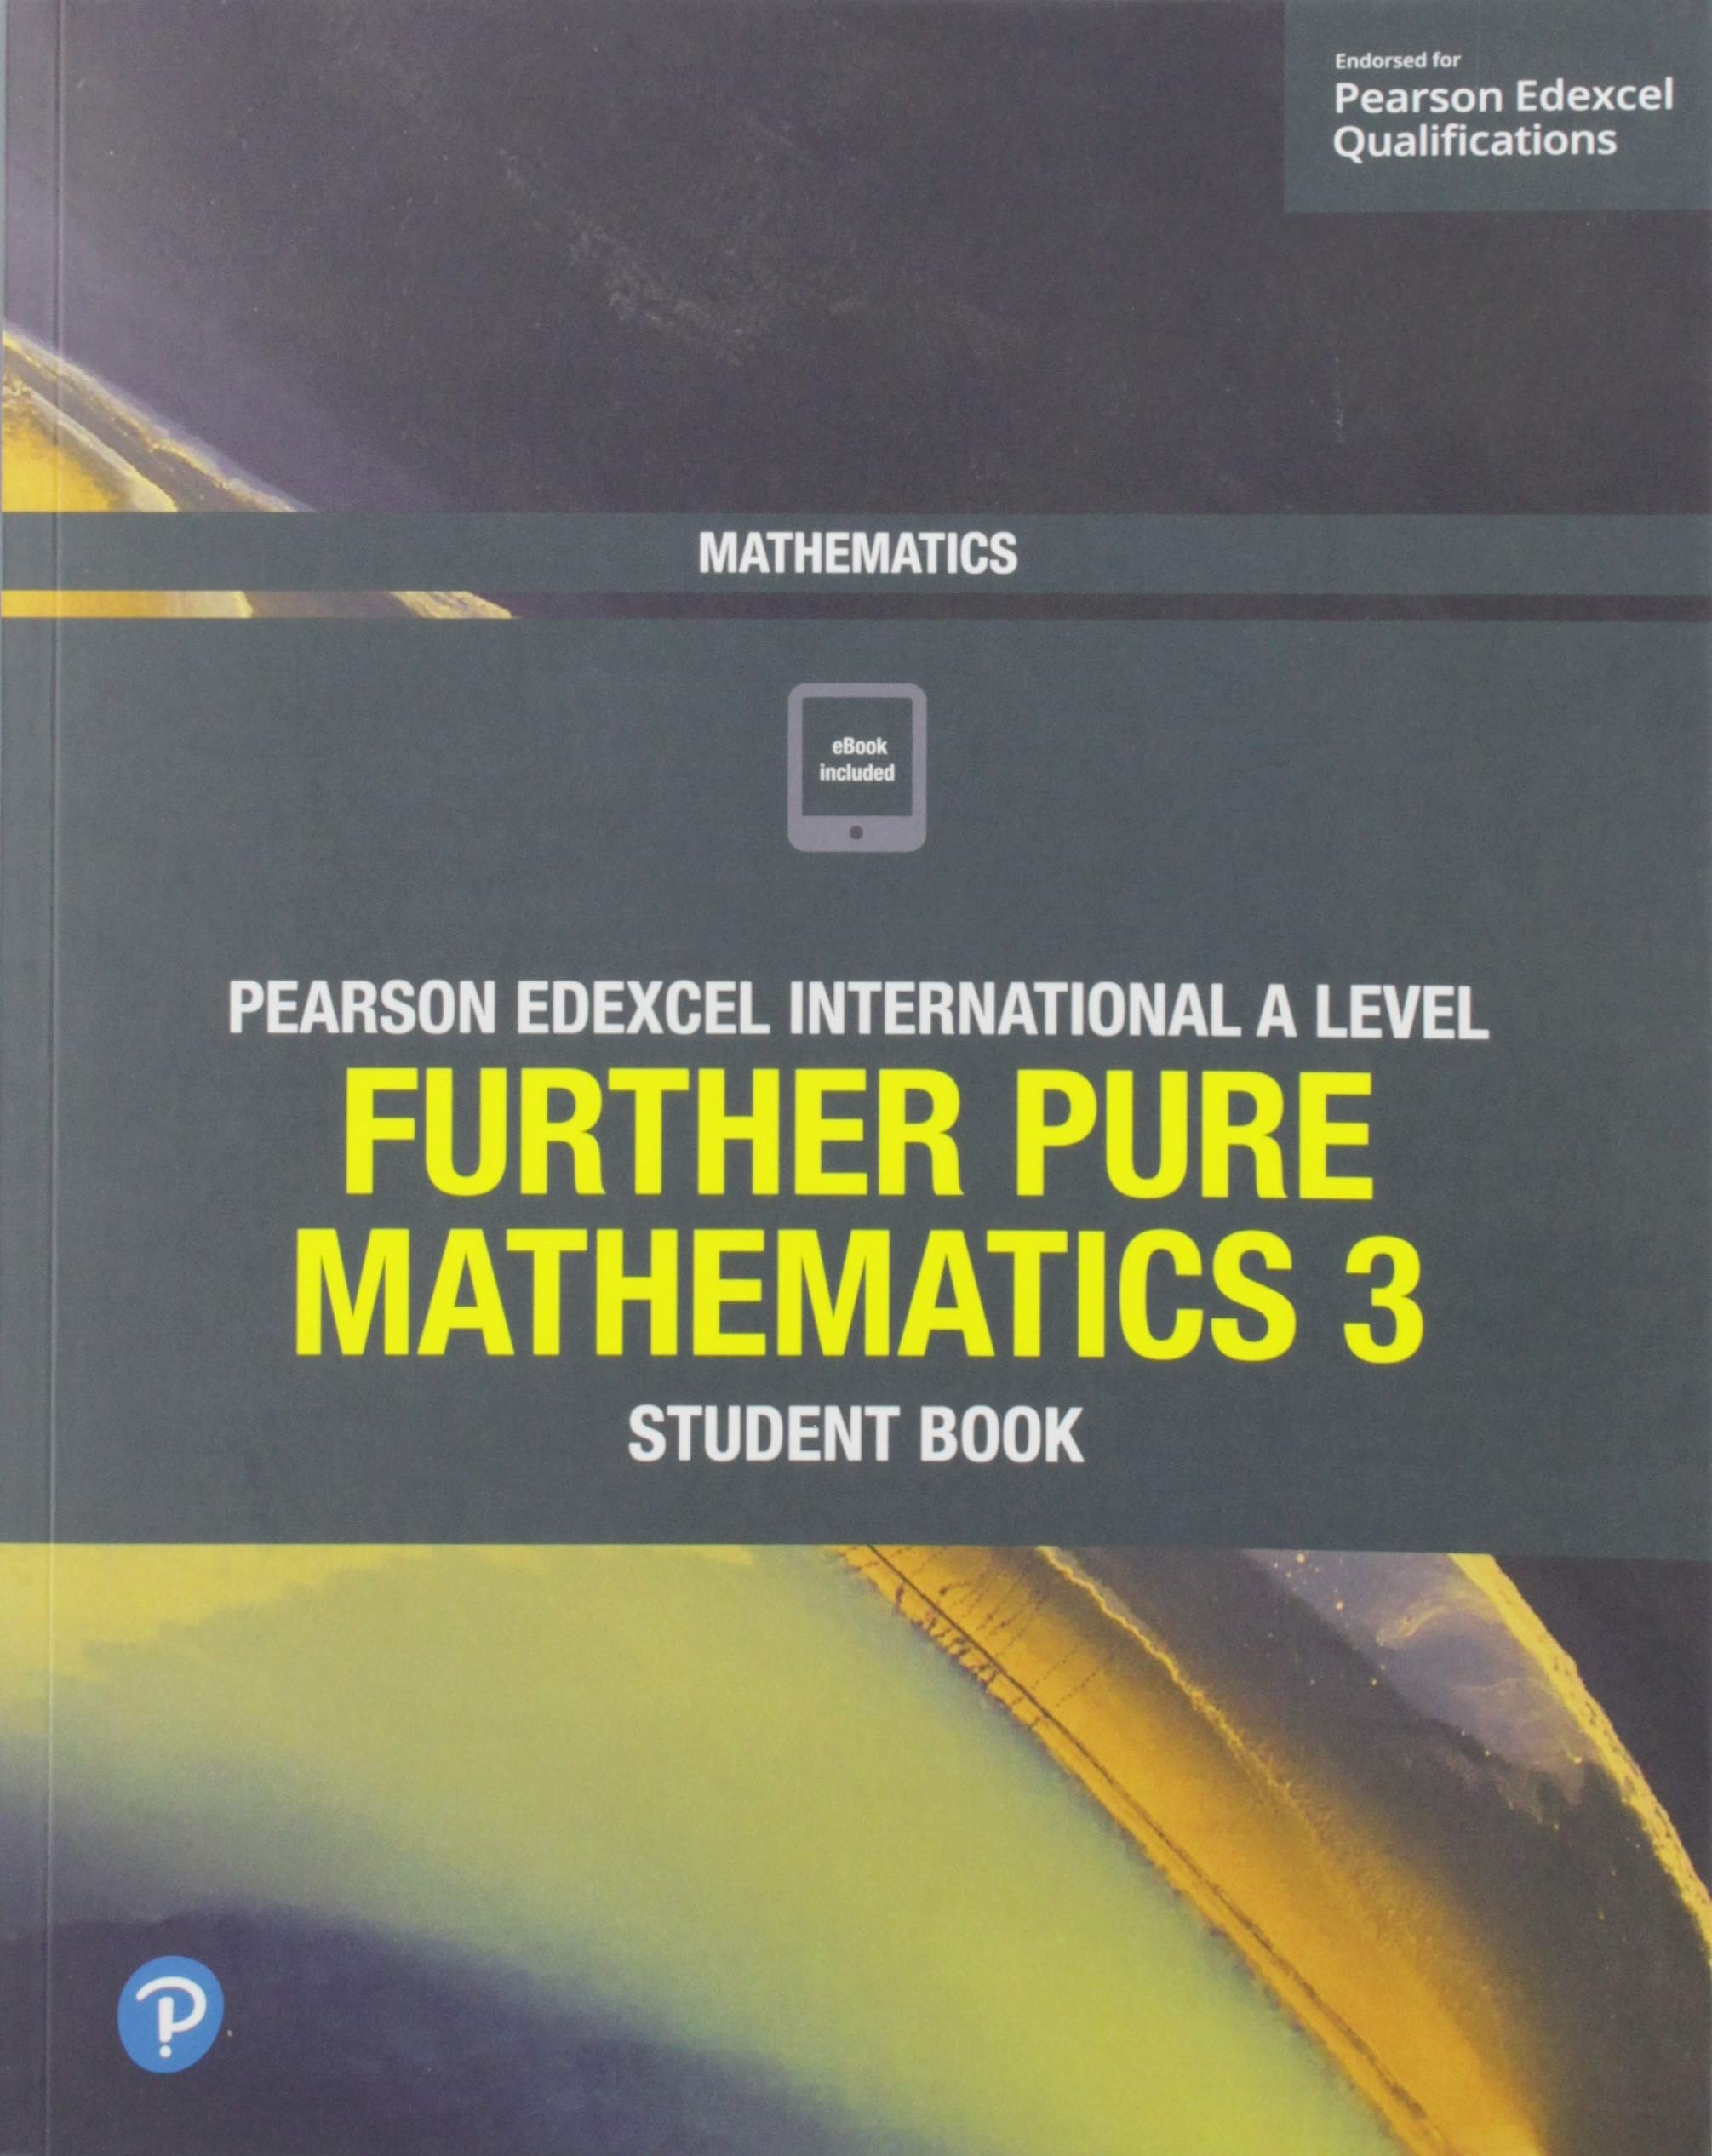 FURTHER PURE MATHEMATICS 3 SB IAL